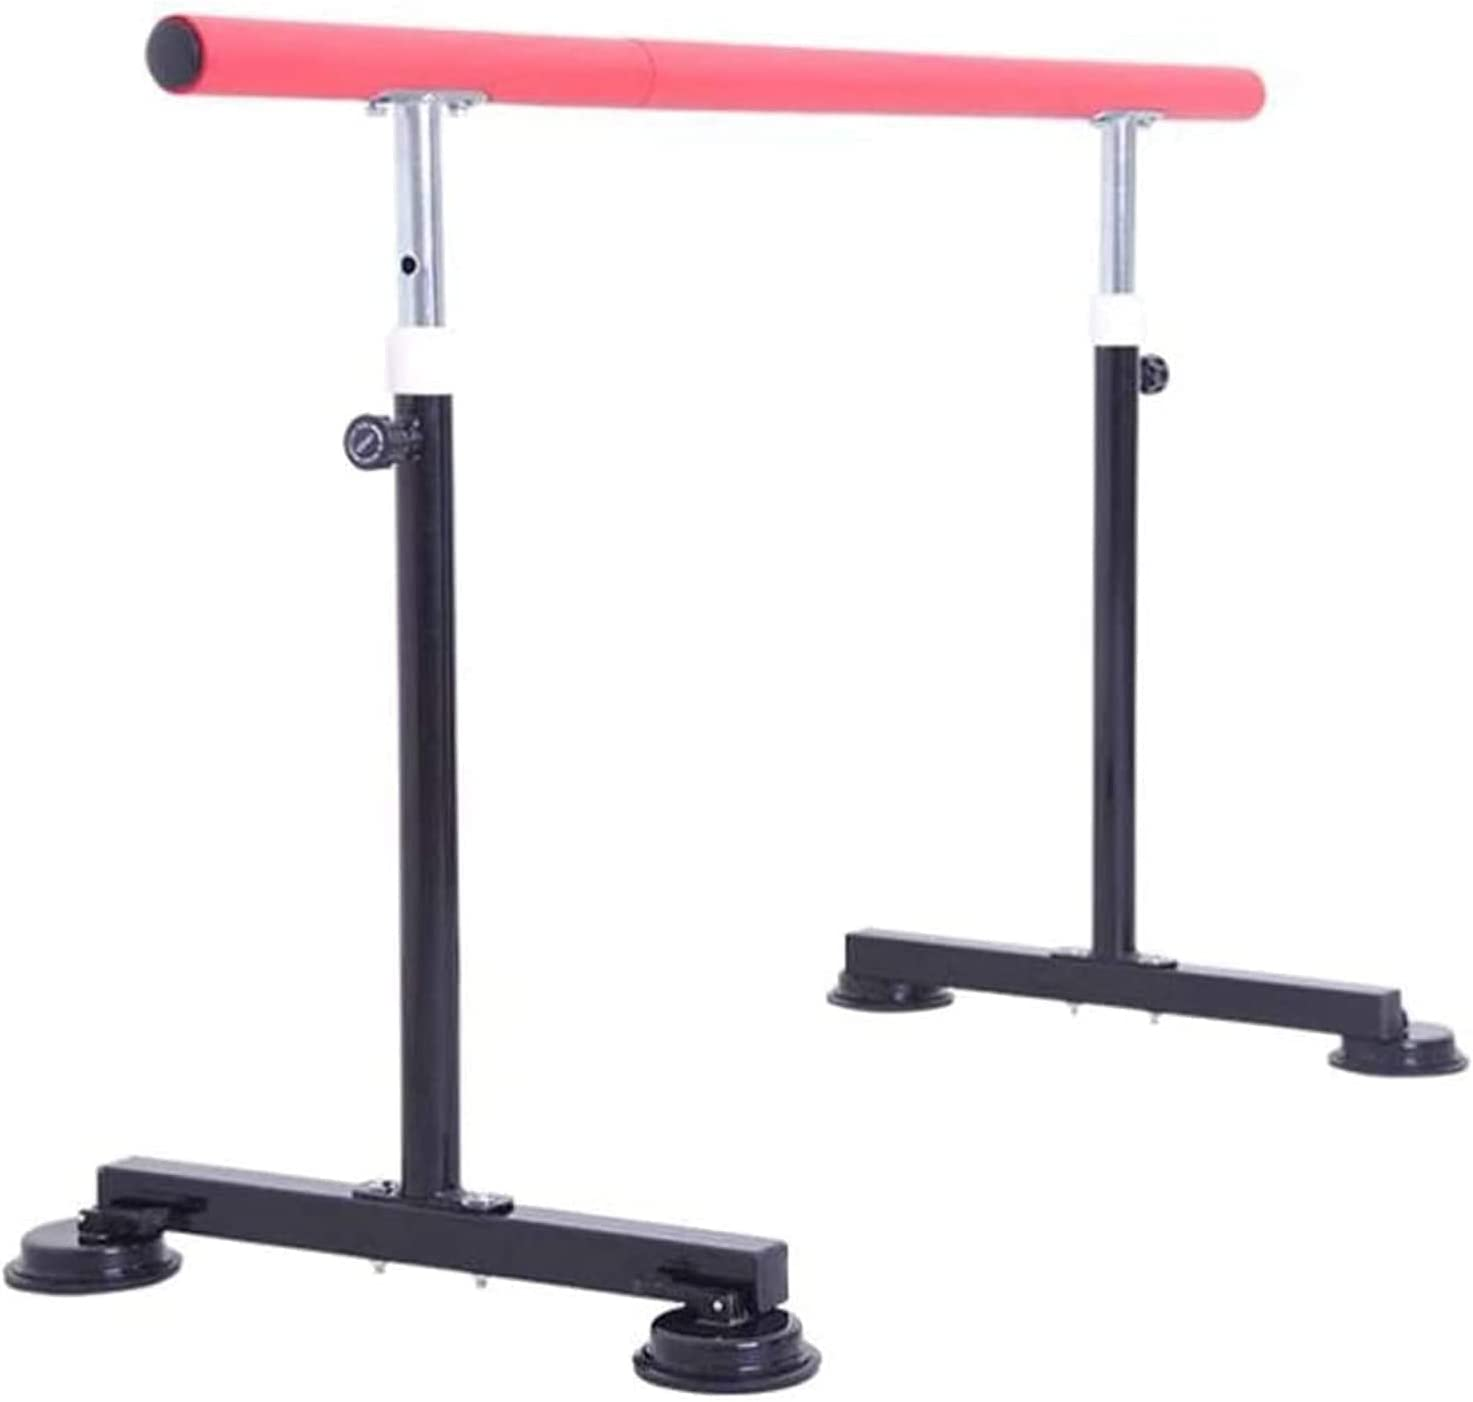 Ballet Milwaukee Mall Barre unisex for Home Mobile Dancing Liftable